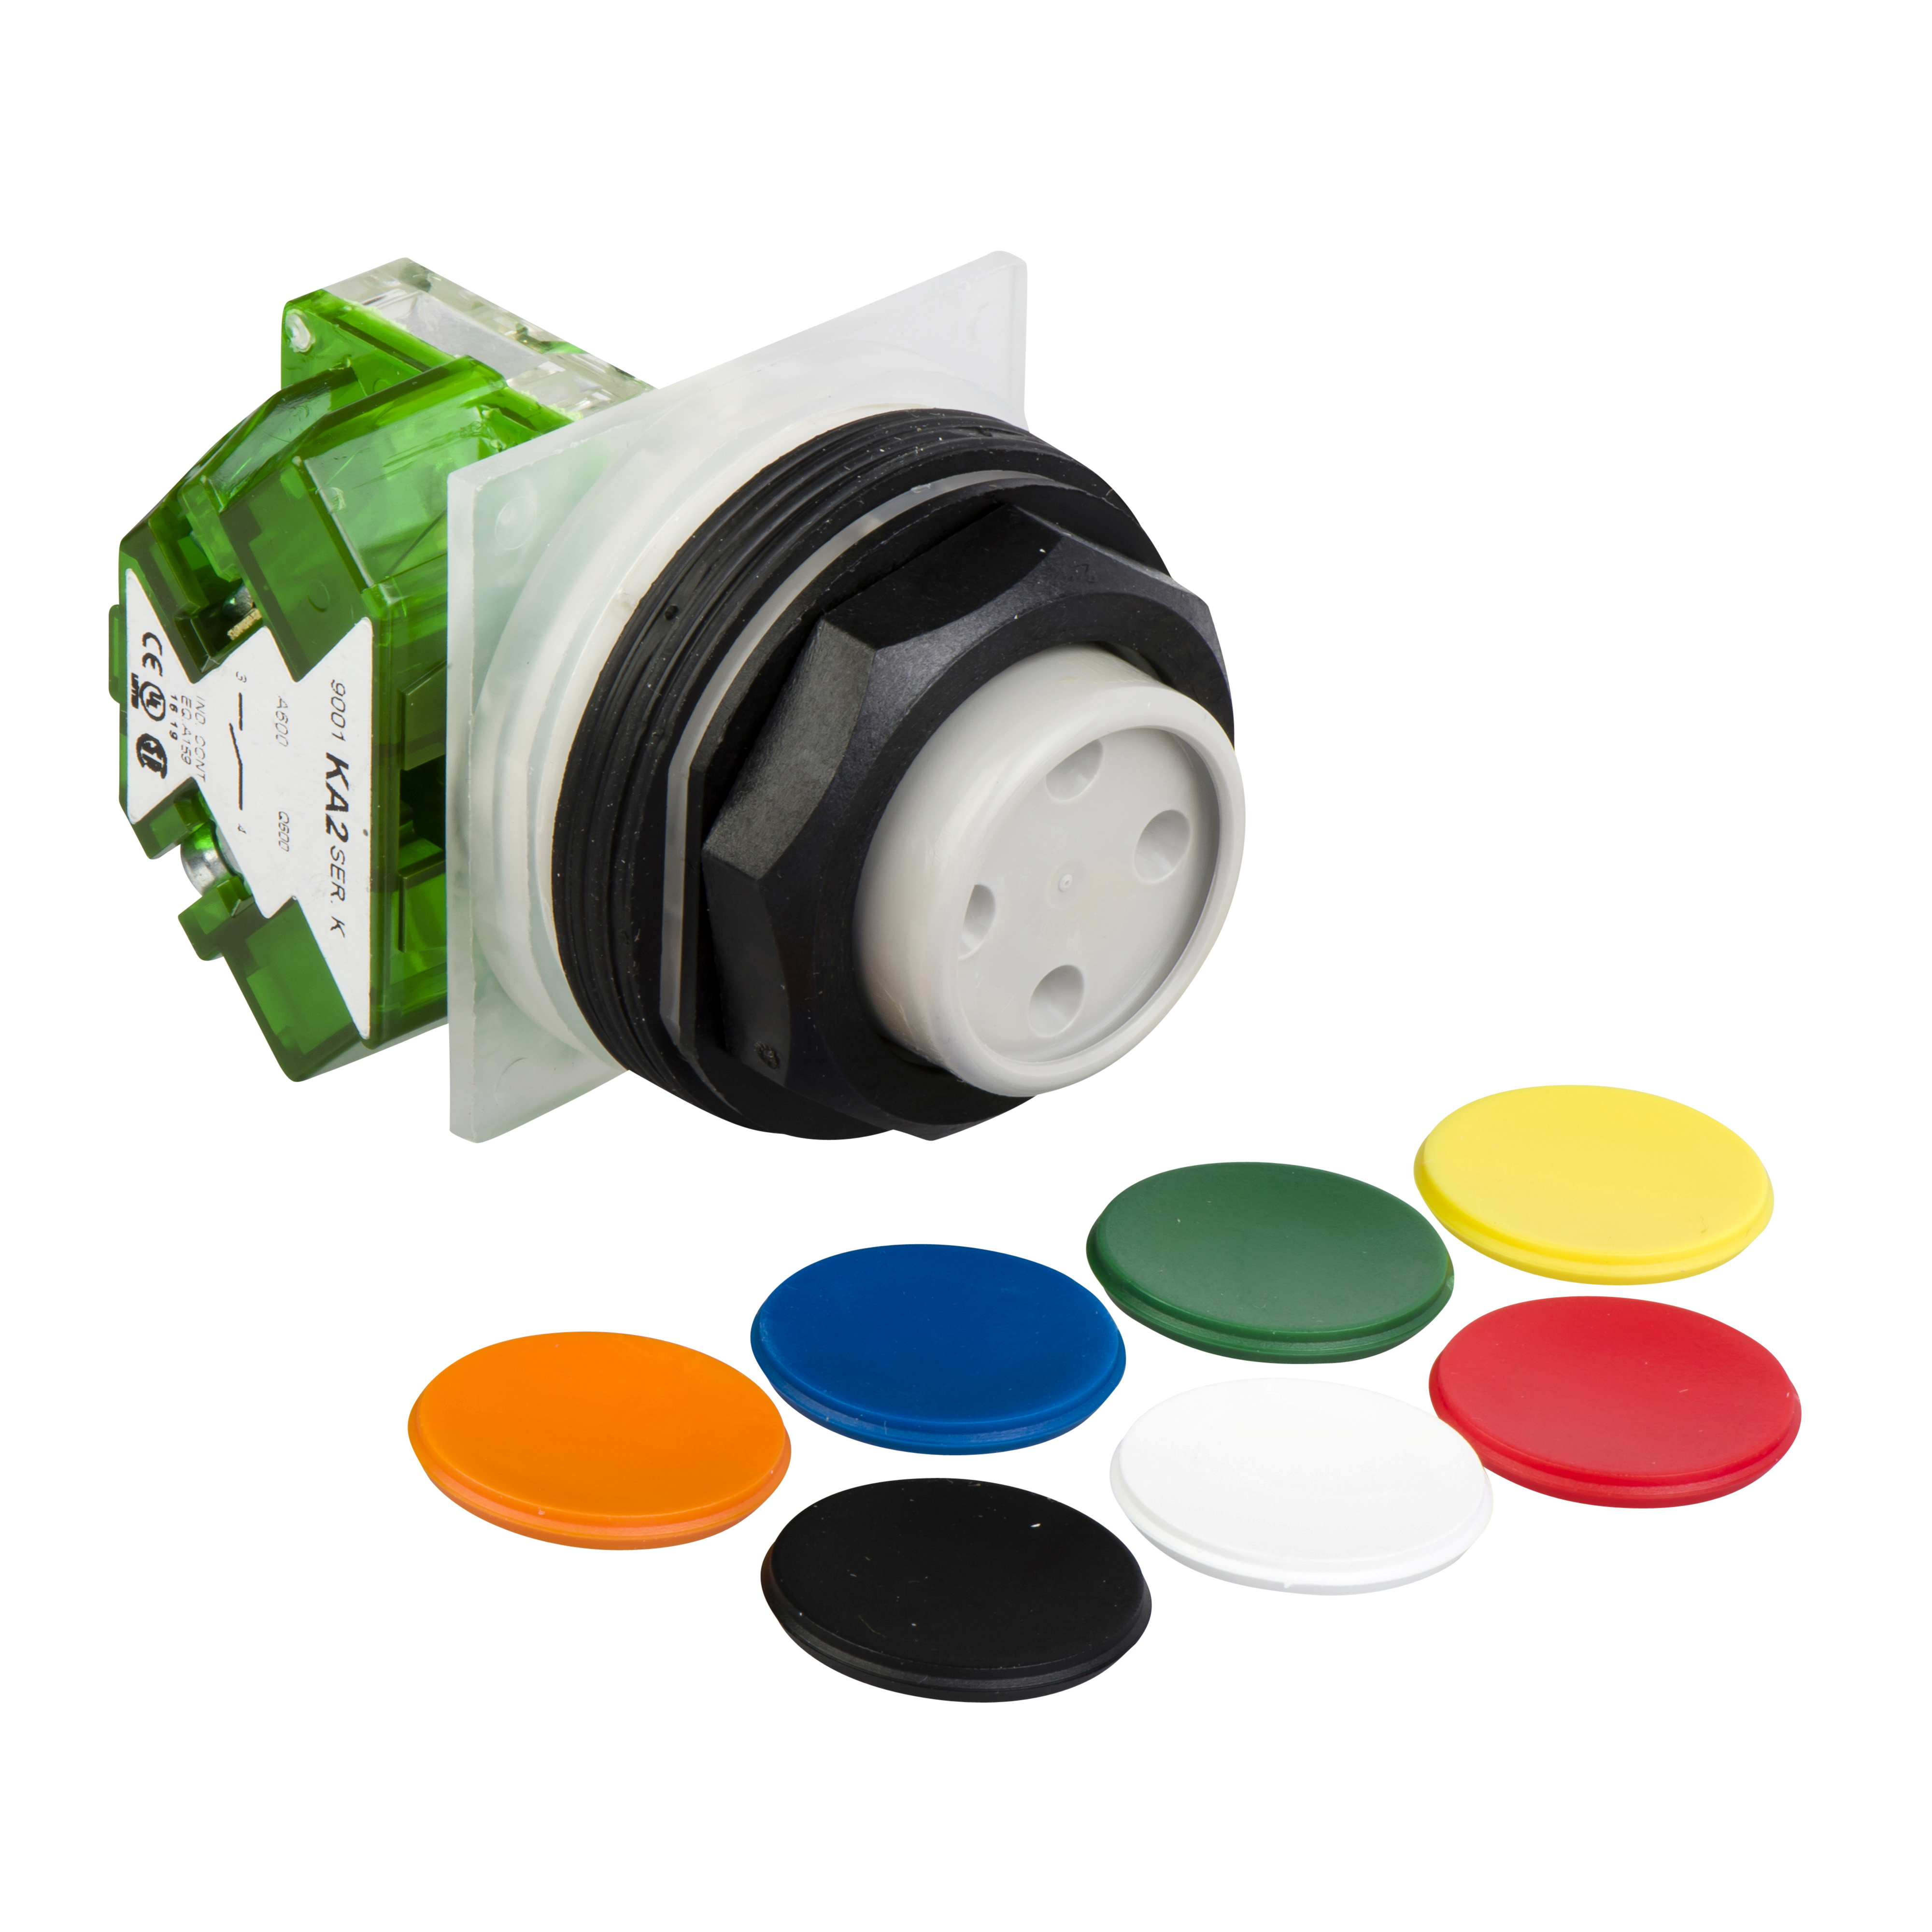 SCHNEIDER ELECTRIC 7 colors choice pushbutton Ø 30 - projecting spring return- 1NO